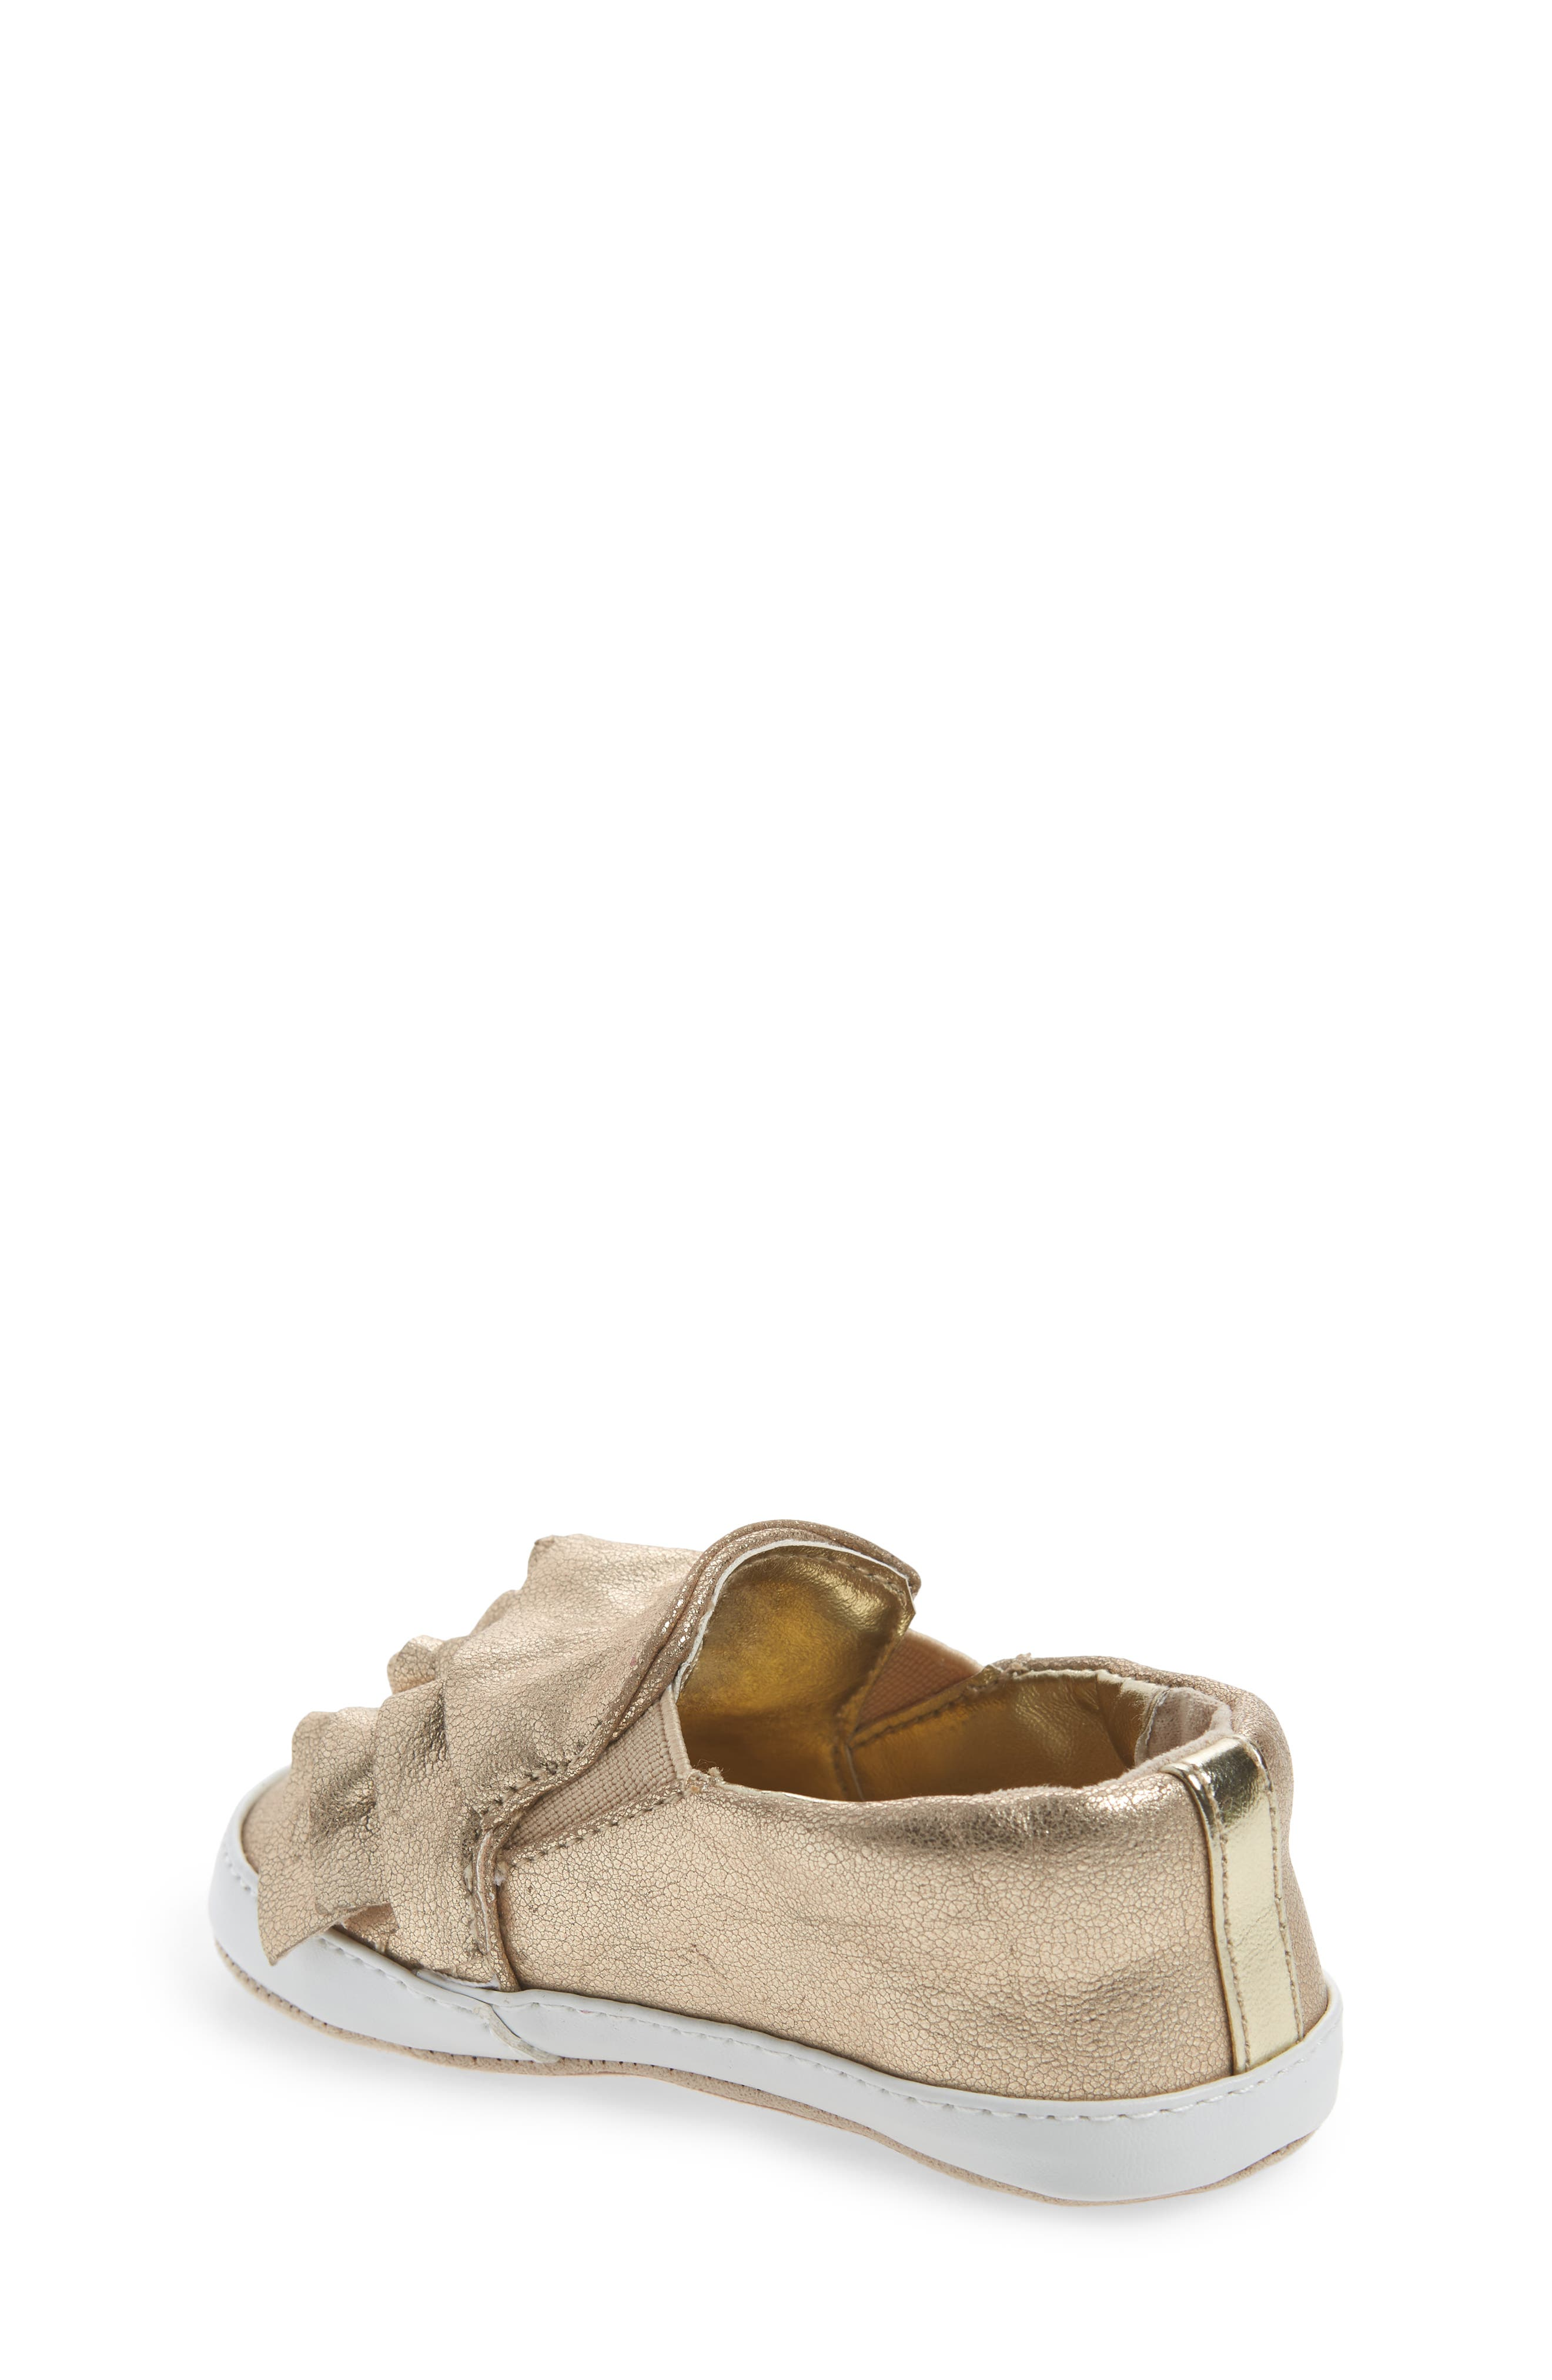 Ruffle Metallic Kam Slip-On Sneaker,                             Alternate thumbnail 2, color,                             710